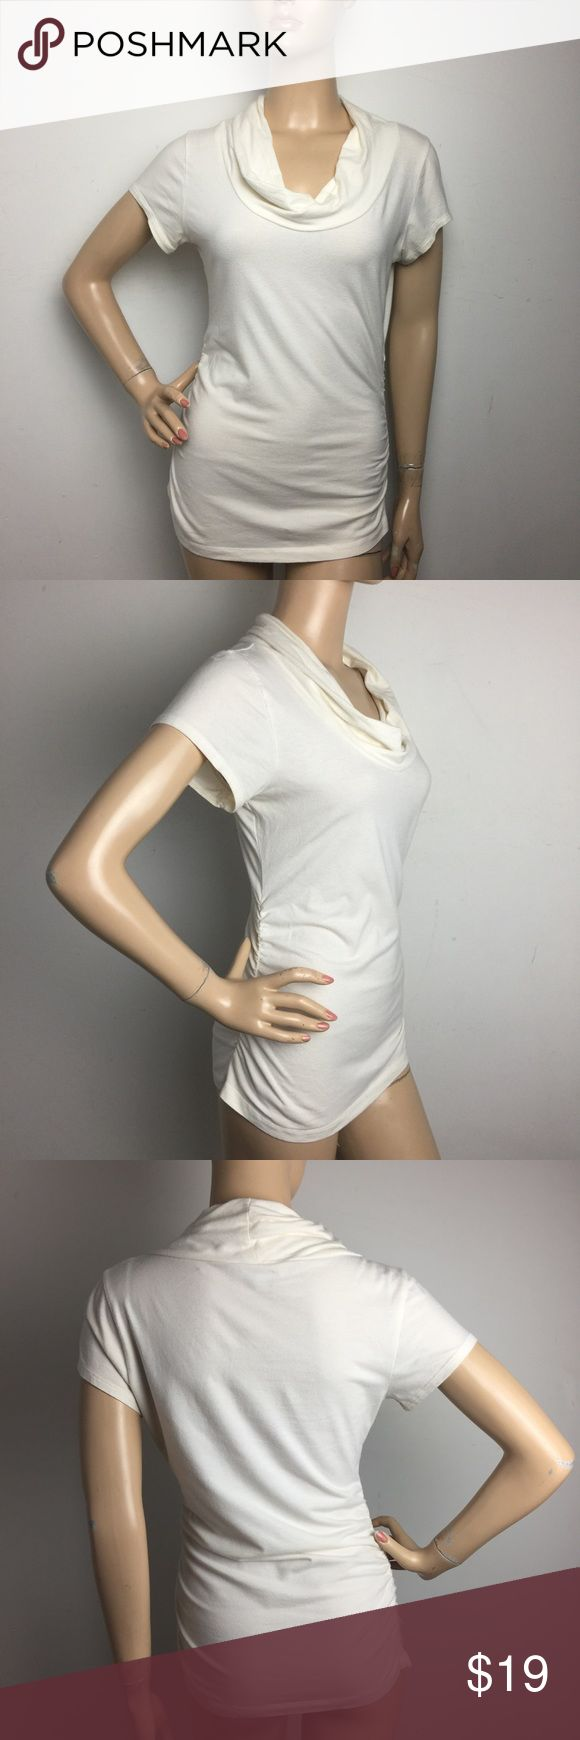 """Cabi Cowl Neck Ruched Sides Cream Tee Medium ALL MEASUREMENTS ARE TAKEN WITH GARMENT LYING FLAT: SLEEVES: 5"""" BUST: 17"""" WAIST: 14"""" LENGHT: 24"""" CAbi Tops Tees - Short Sleeve"""